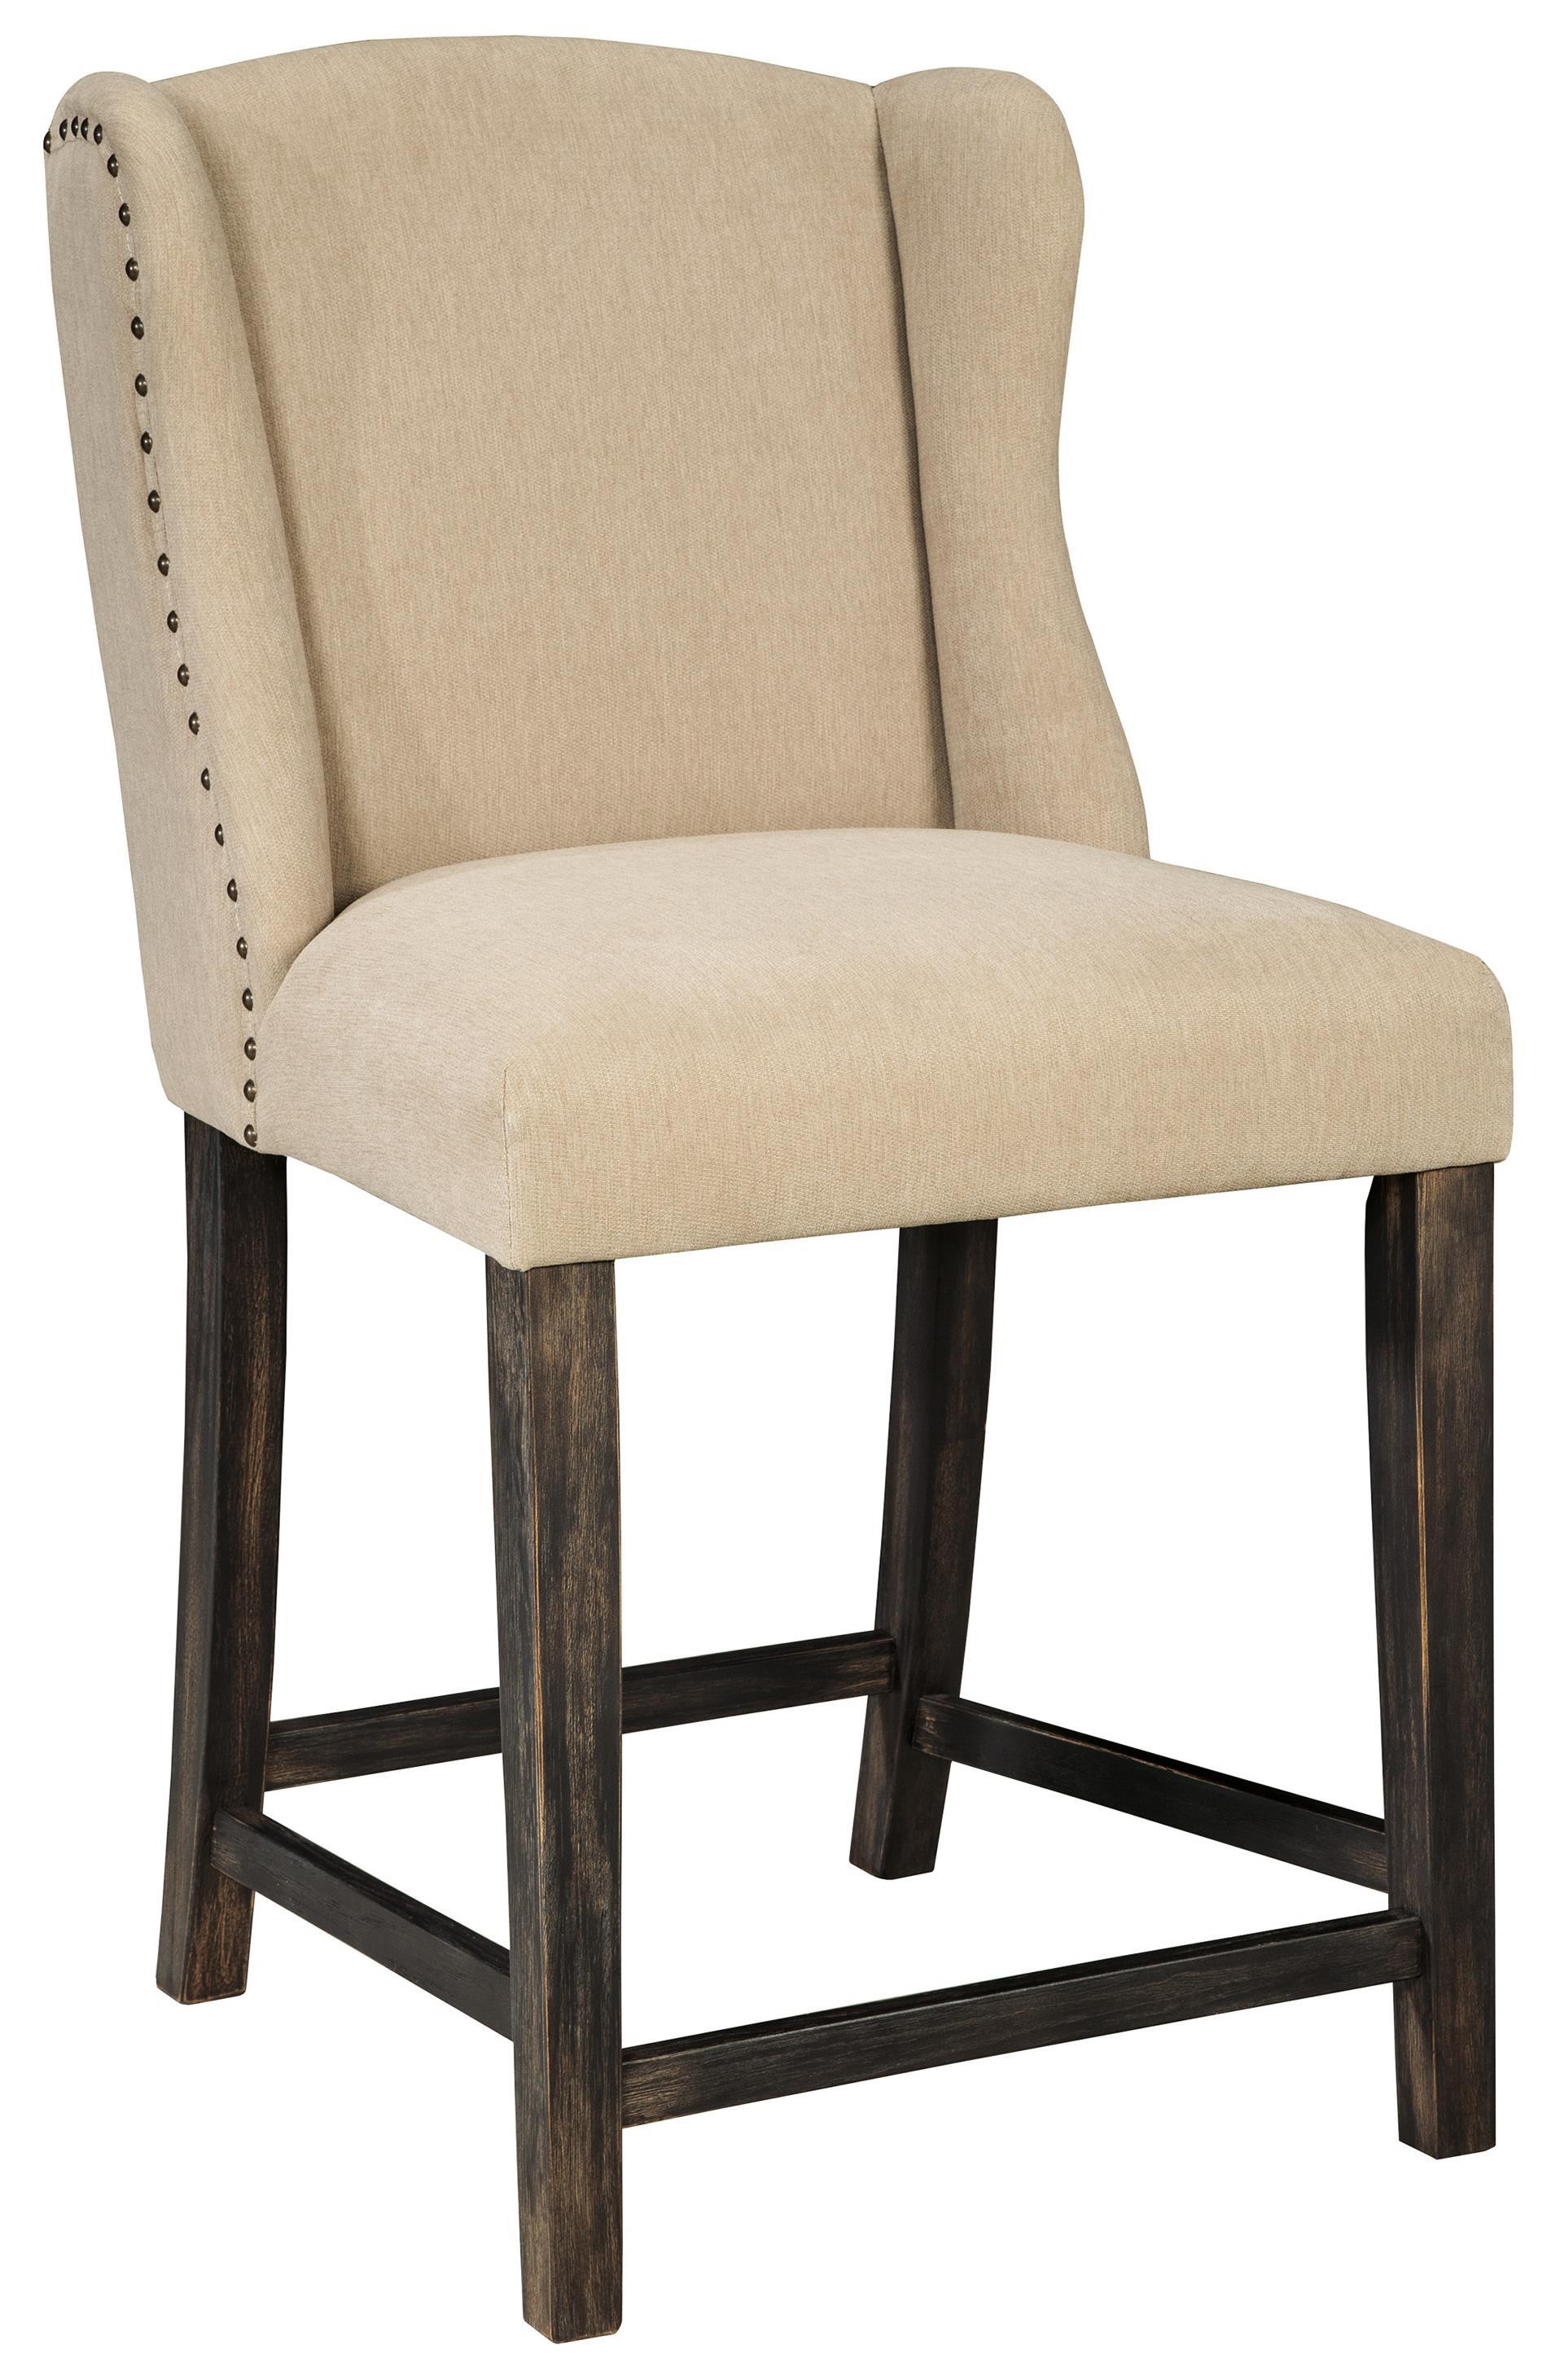 Signature Design by Ashley Moriann Upholstered Barstool - Item Number: D608-524